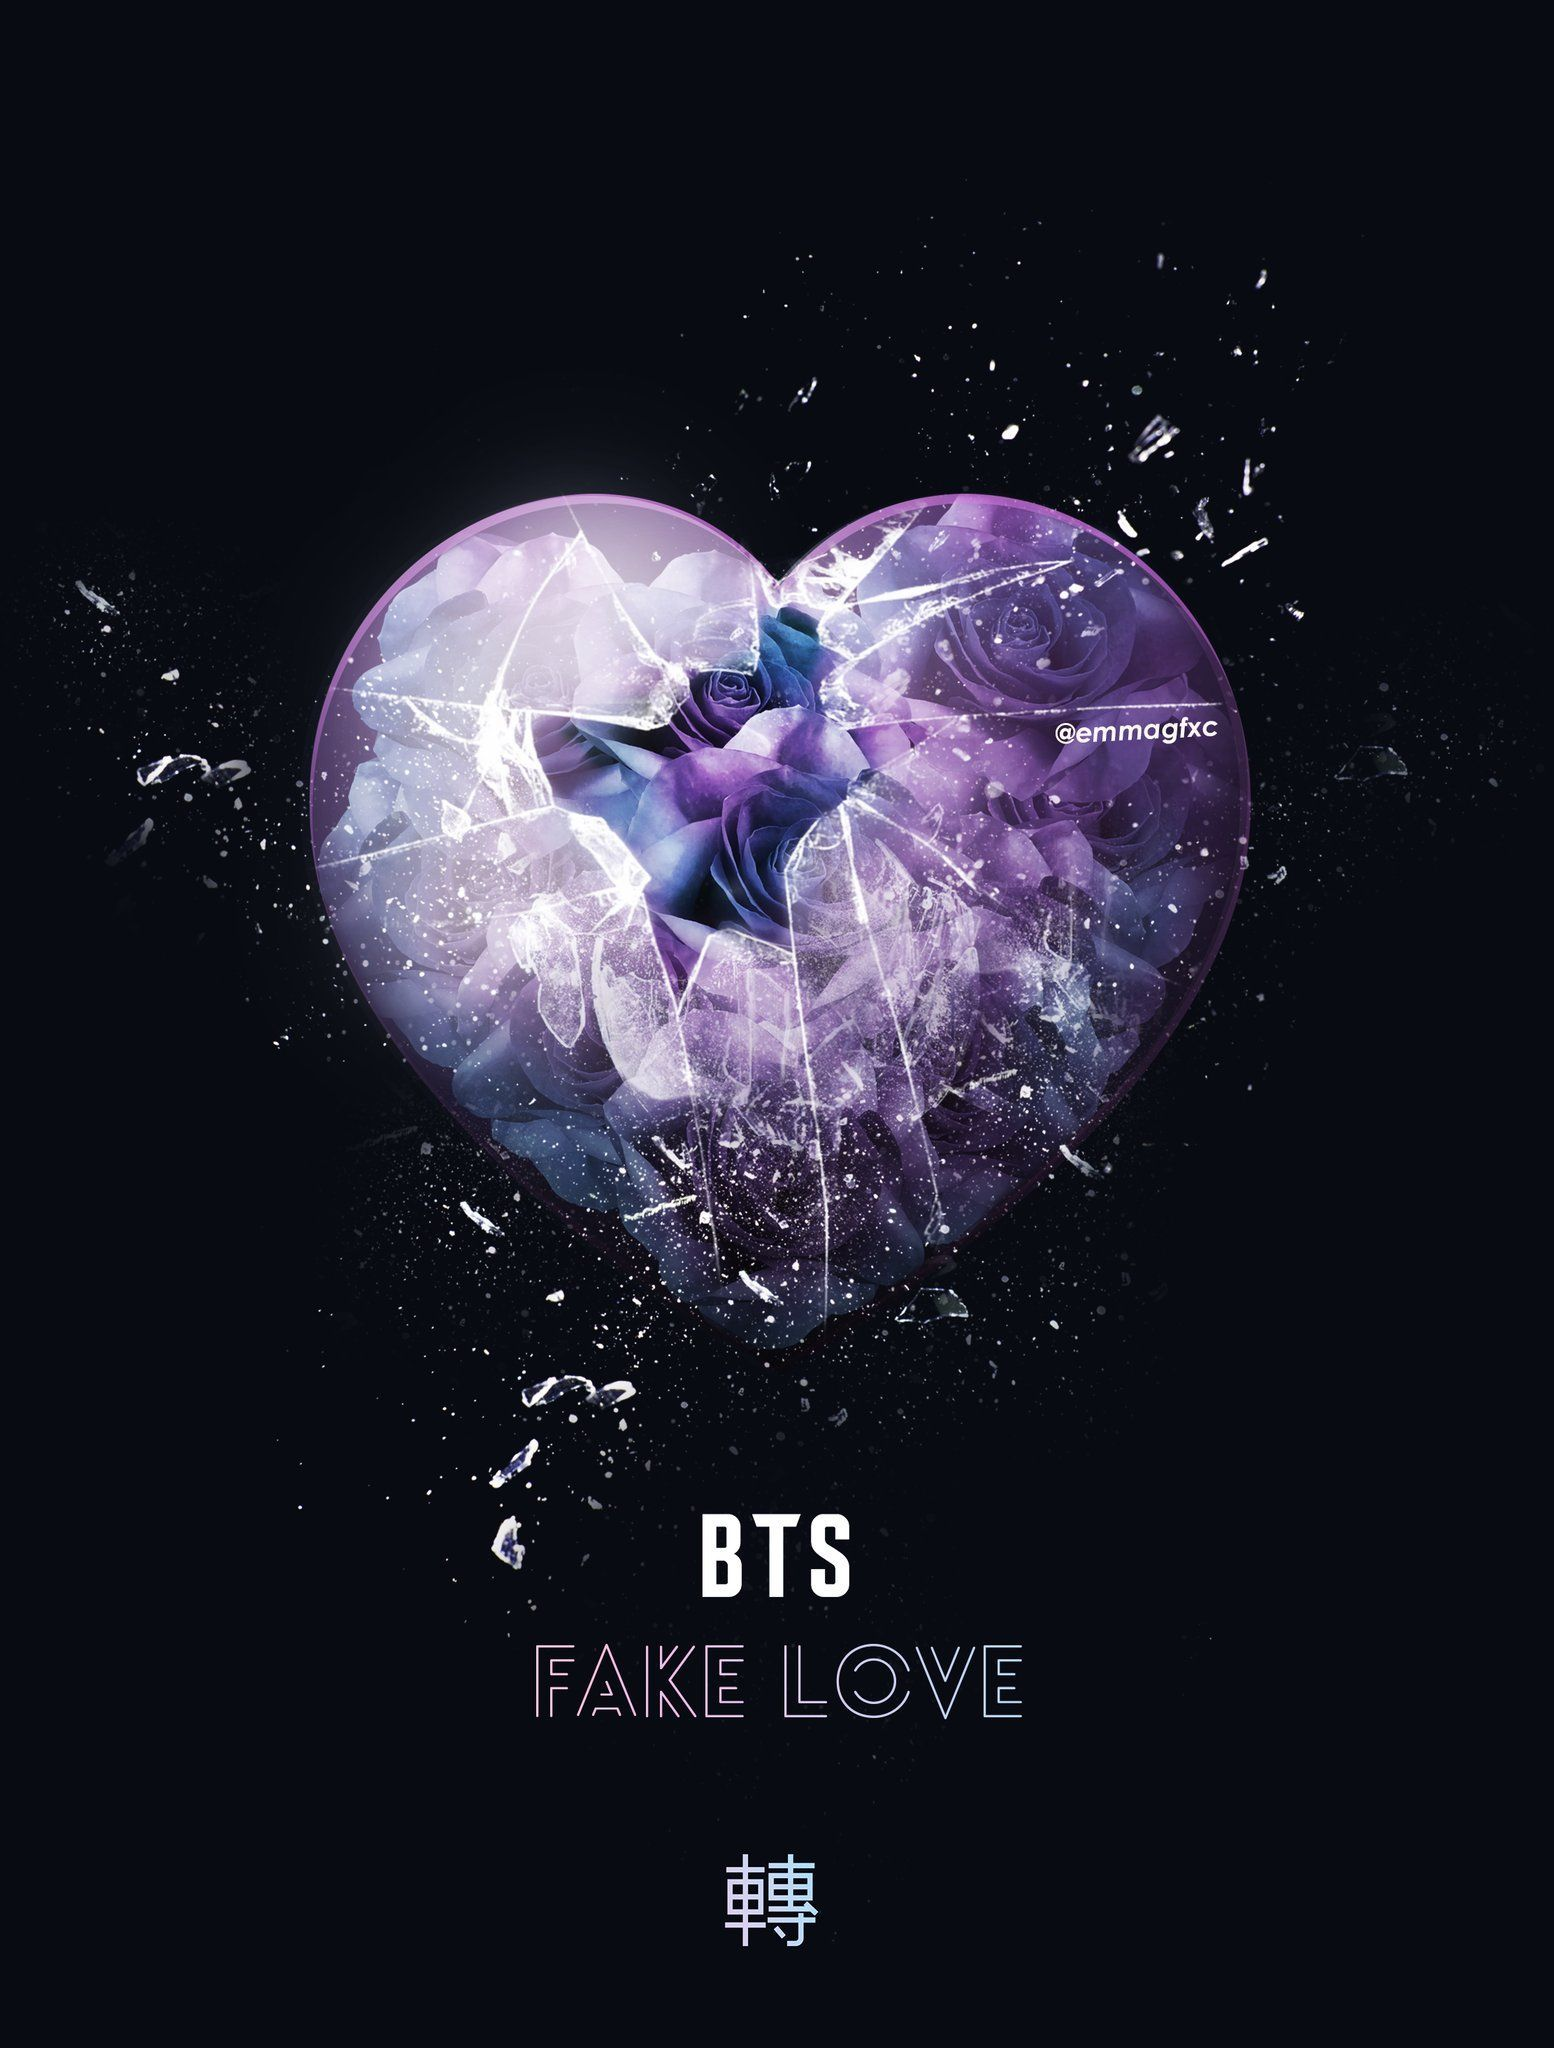 Love Kpop Wallpapers Top Free Backgrounds Wallpaperaccess - Bts Fake Love Lyrics , HD Wallpaper & Backgrounds